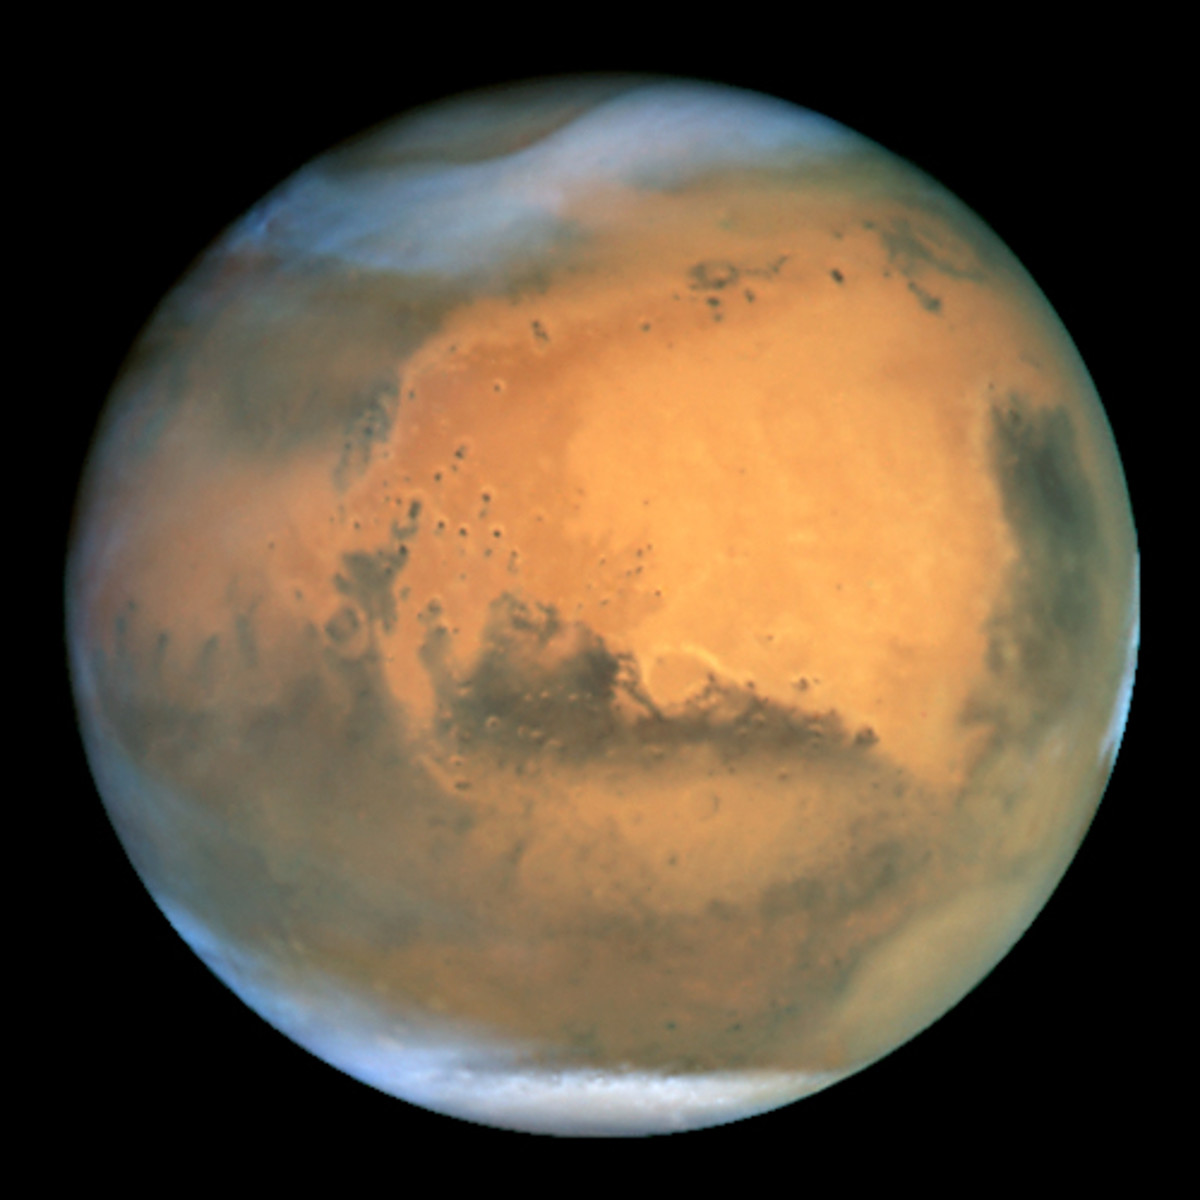 Mars - A Small Red Planet